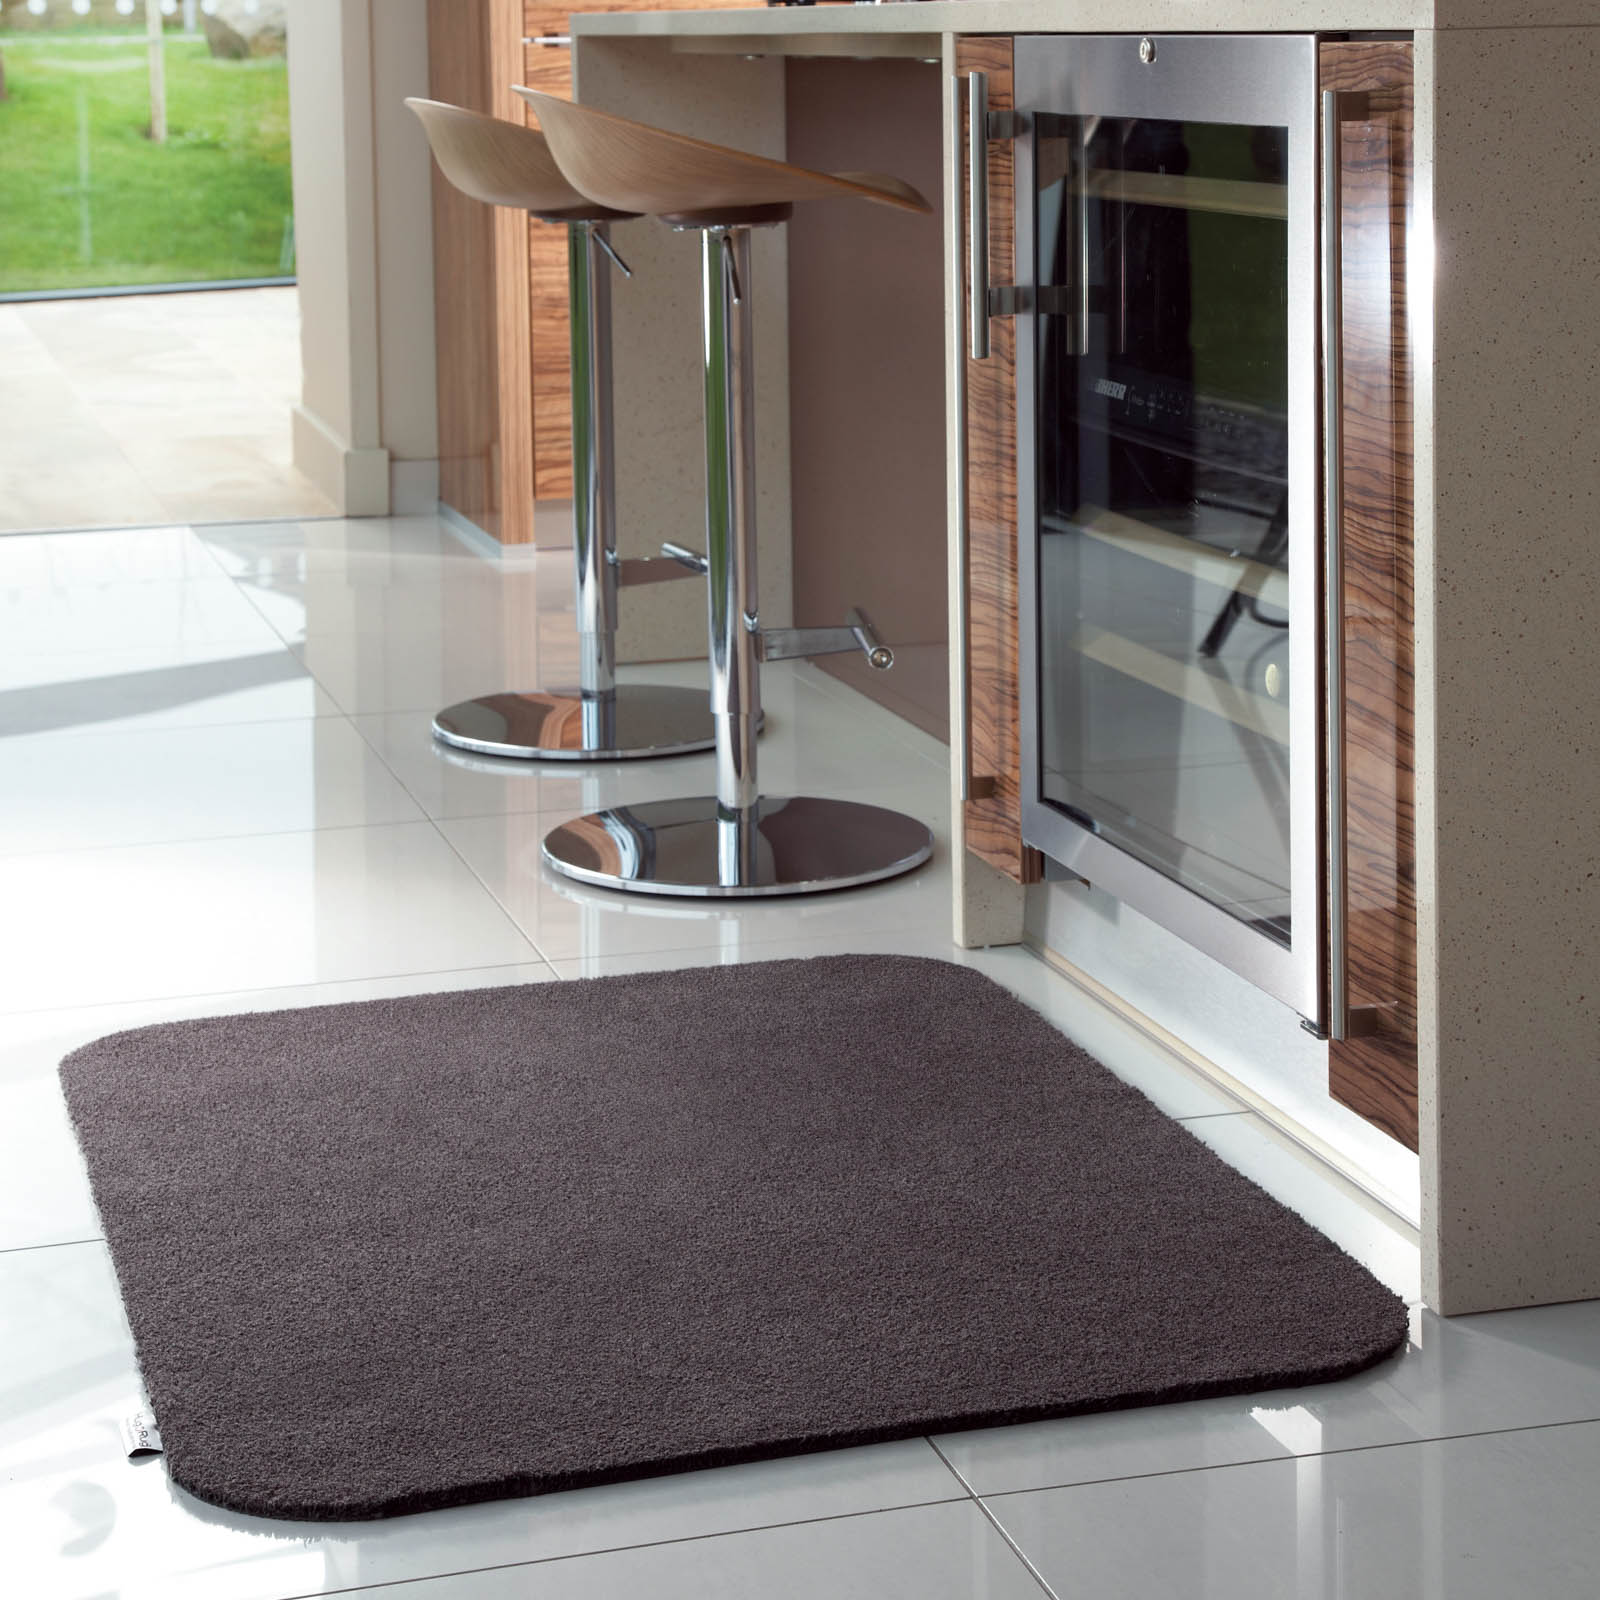 Hug Rug Select Doormats in Truffle